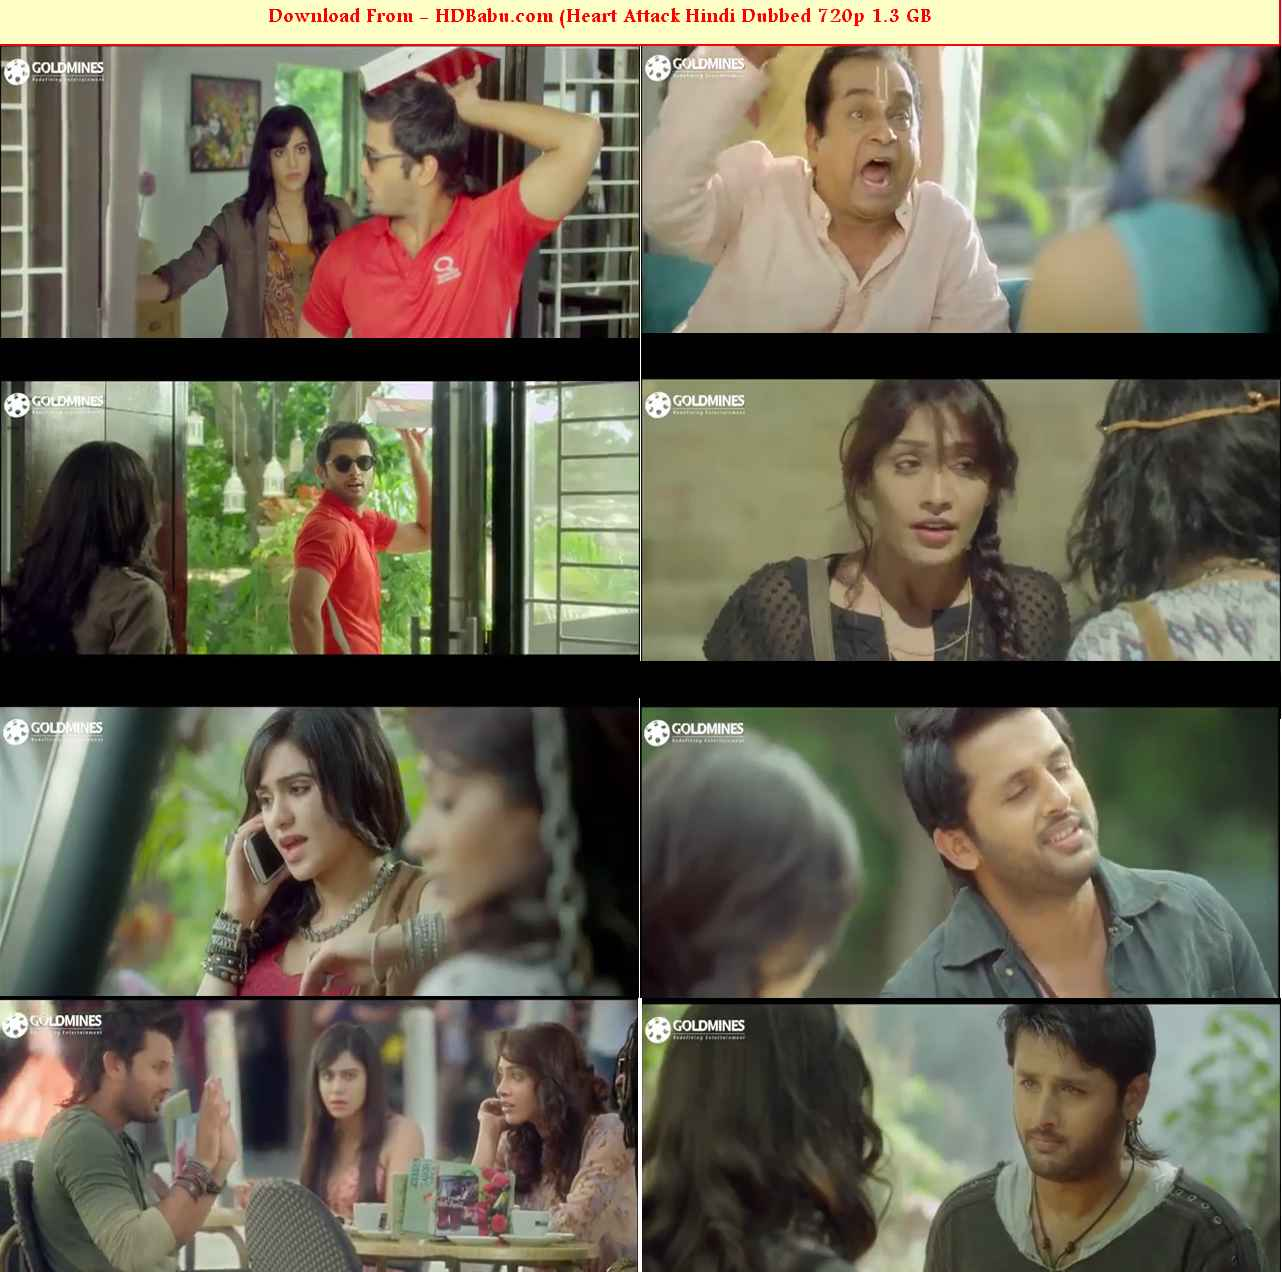 Heart Attack Hindi Dubbed Full Movie Download